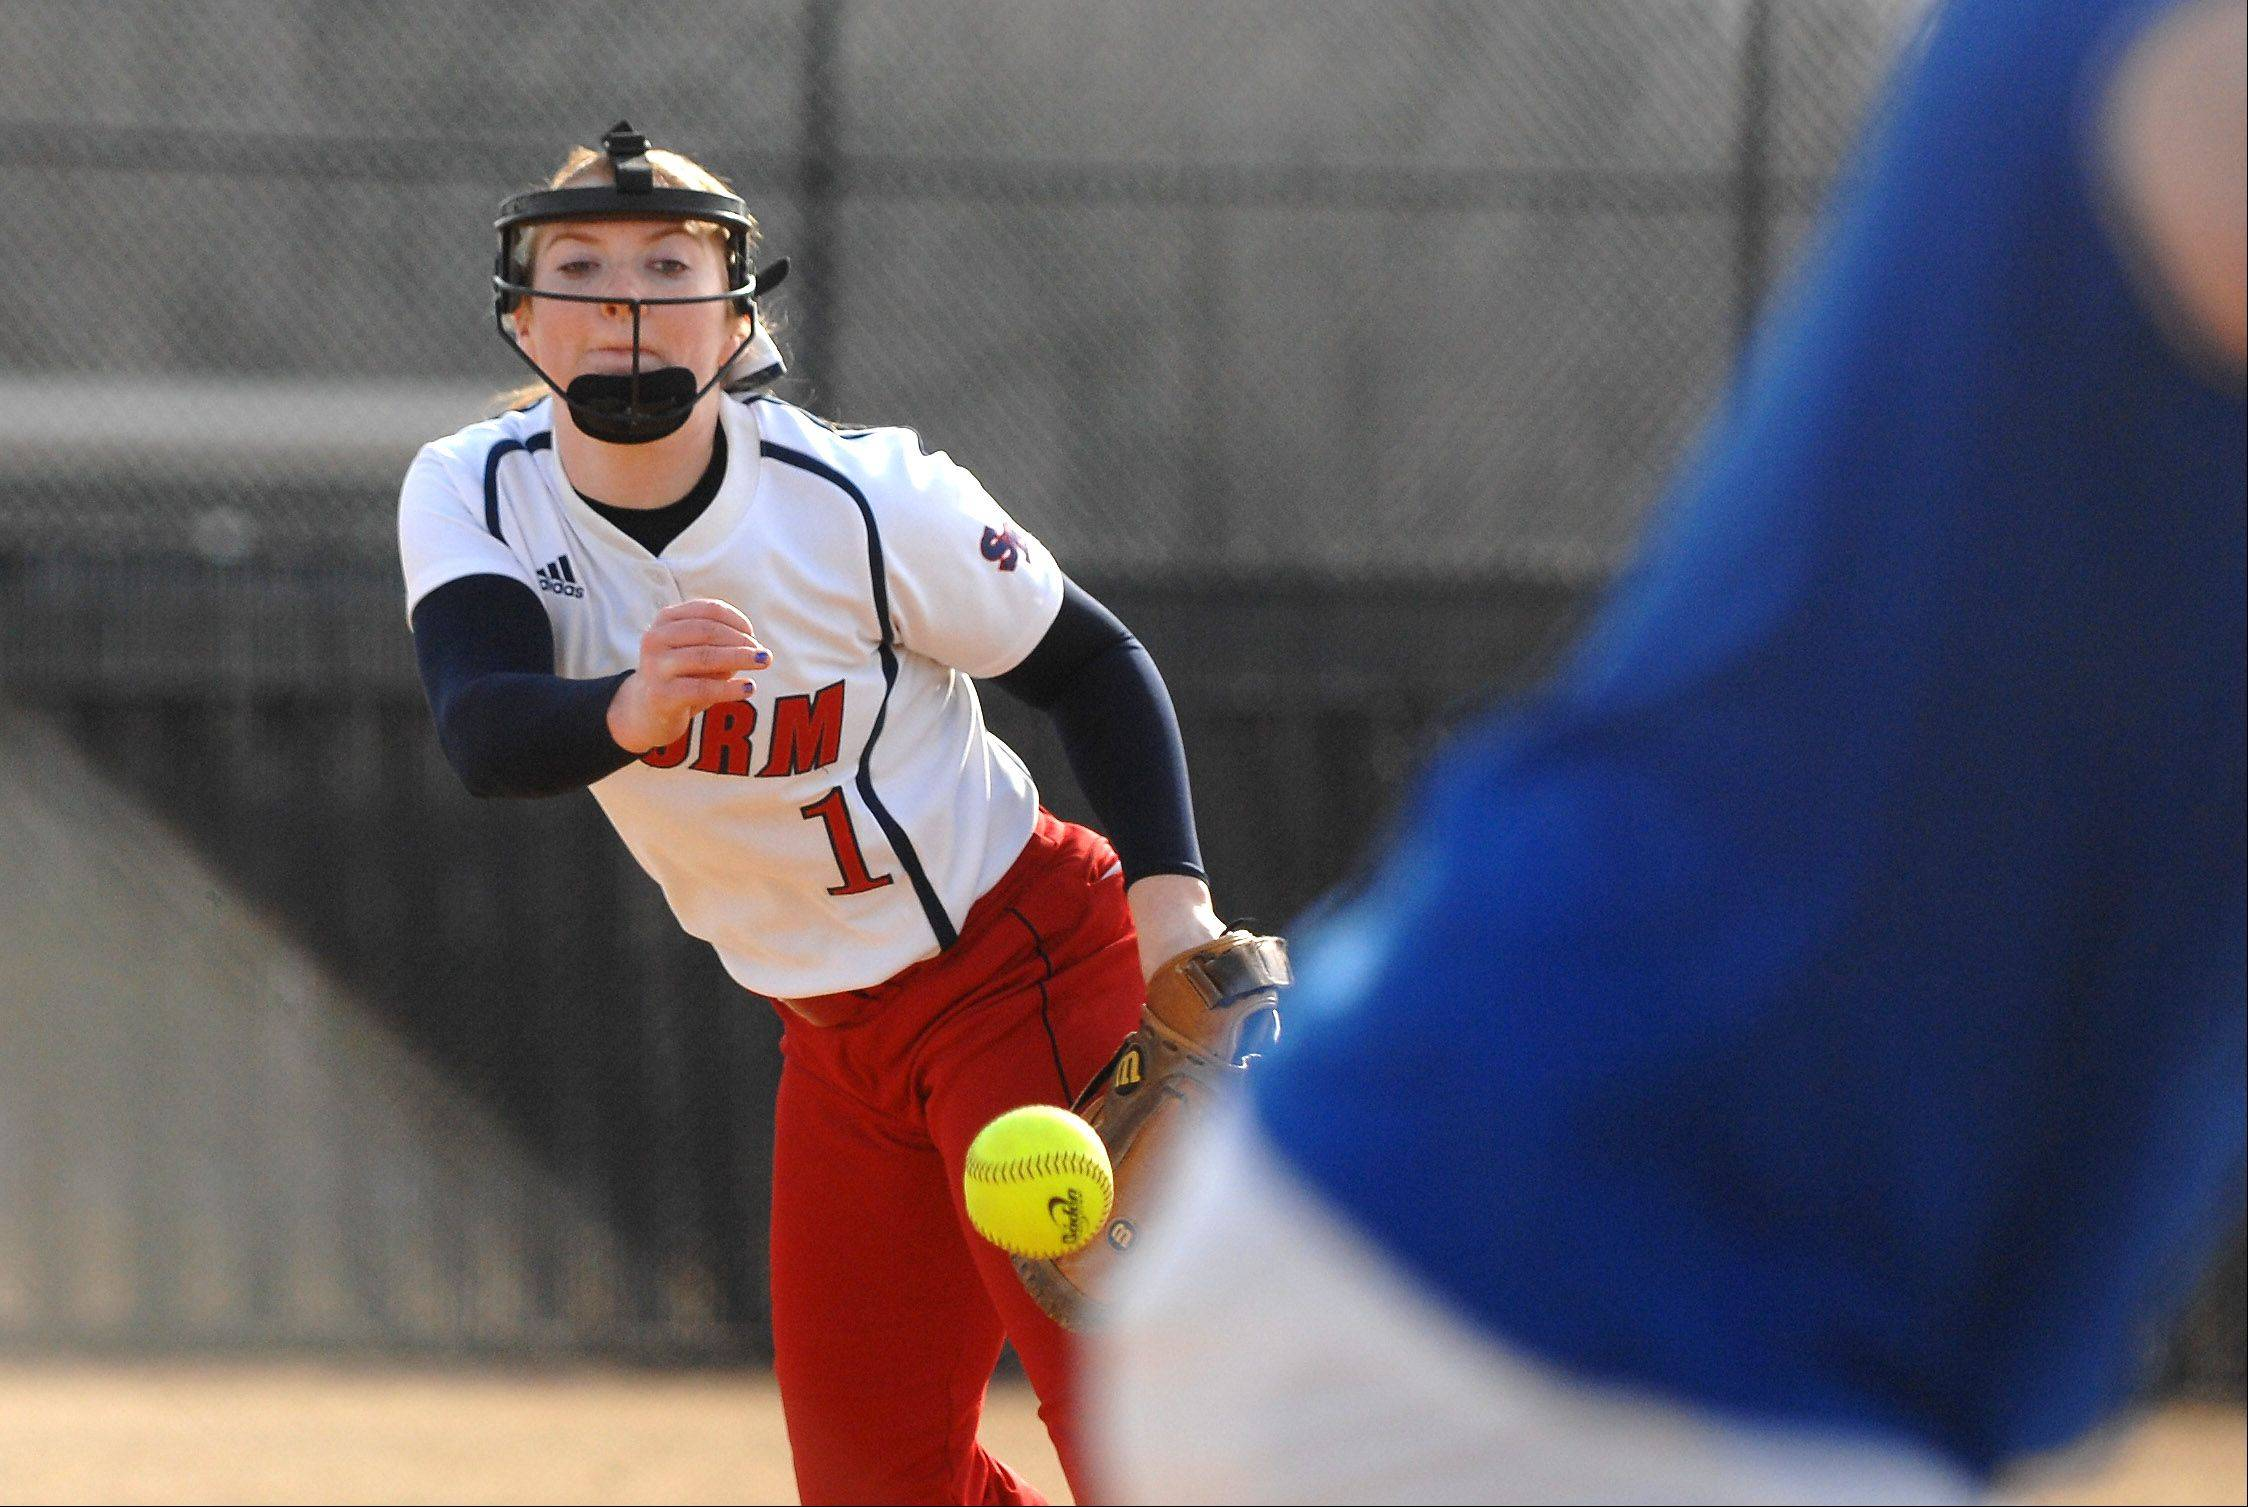 South Elgin junior Paige Allen will be one of the top returning pitchers in the Fox Valley area next season.